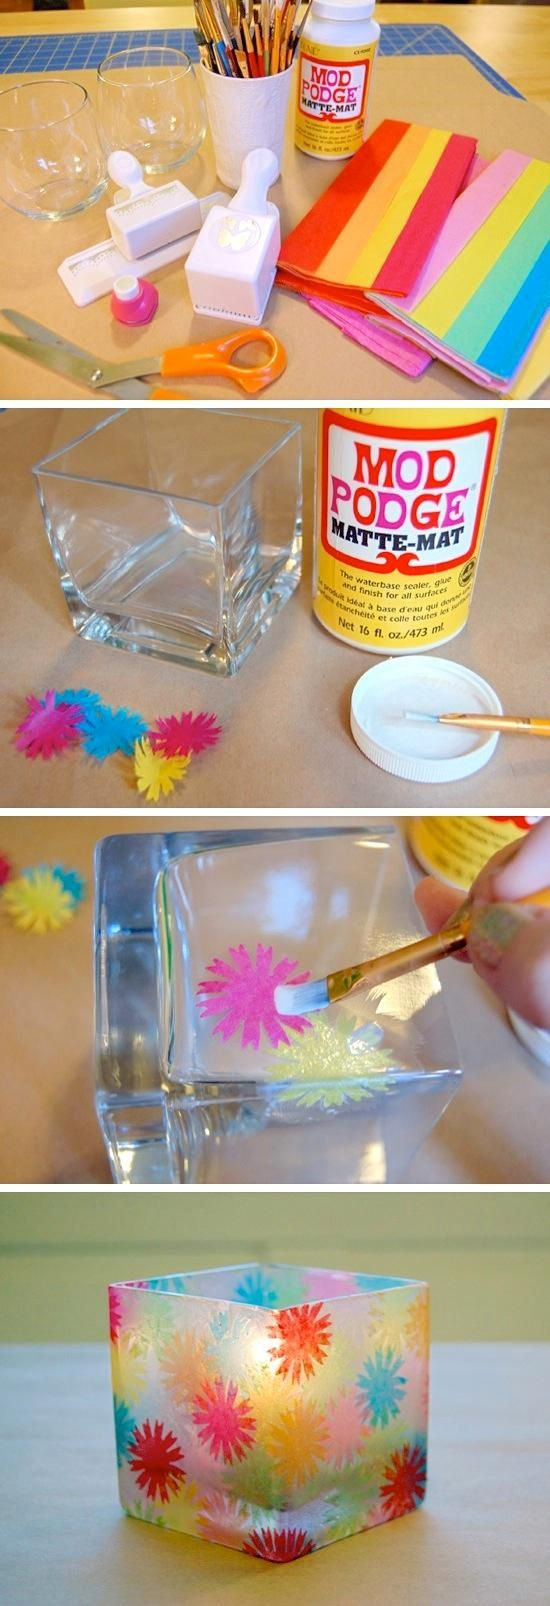 DIY candle holders. Possible idea for holiday craft event at the kids holiday workshop